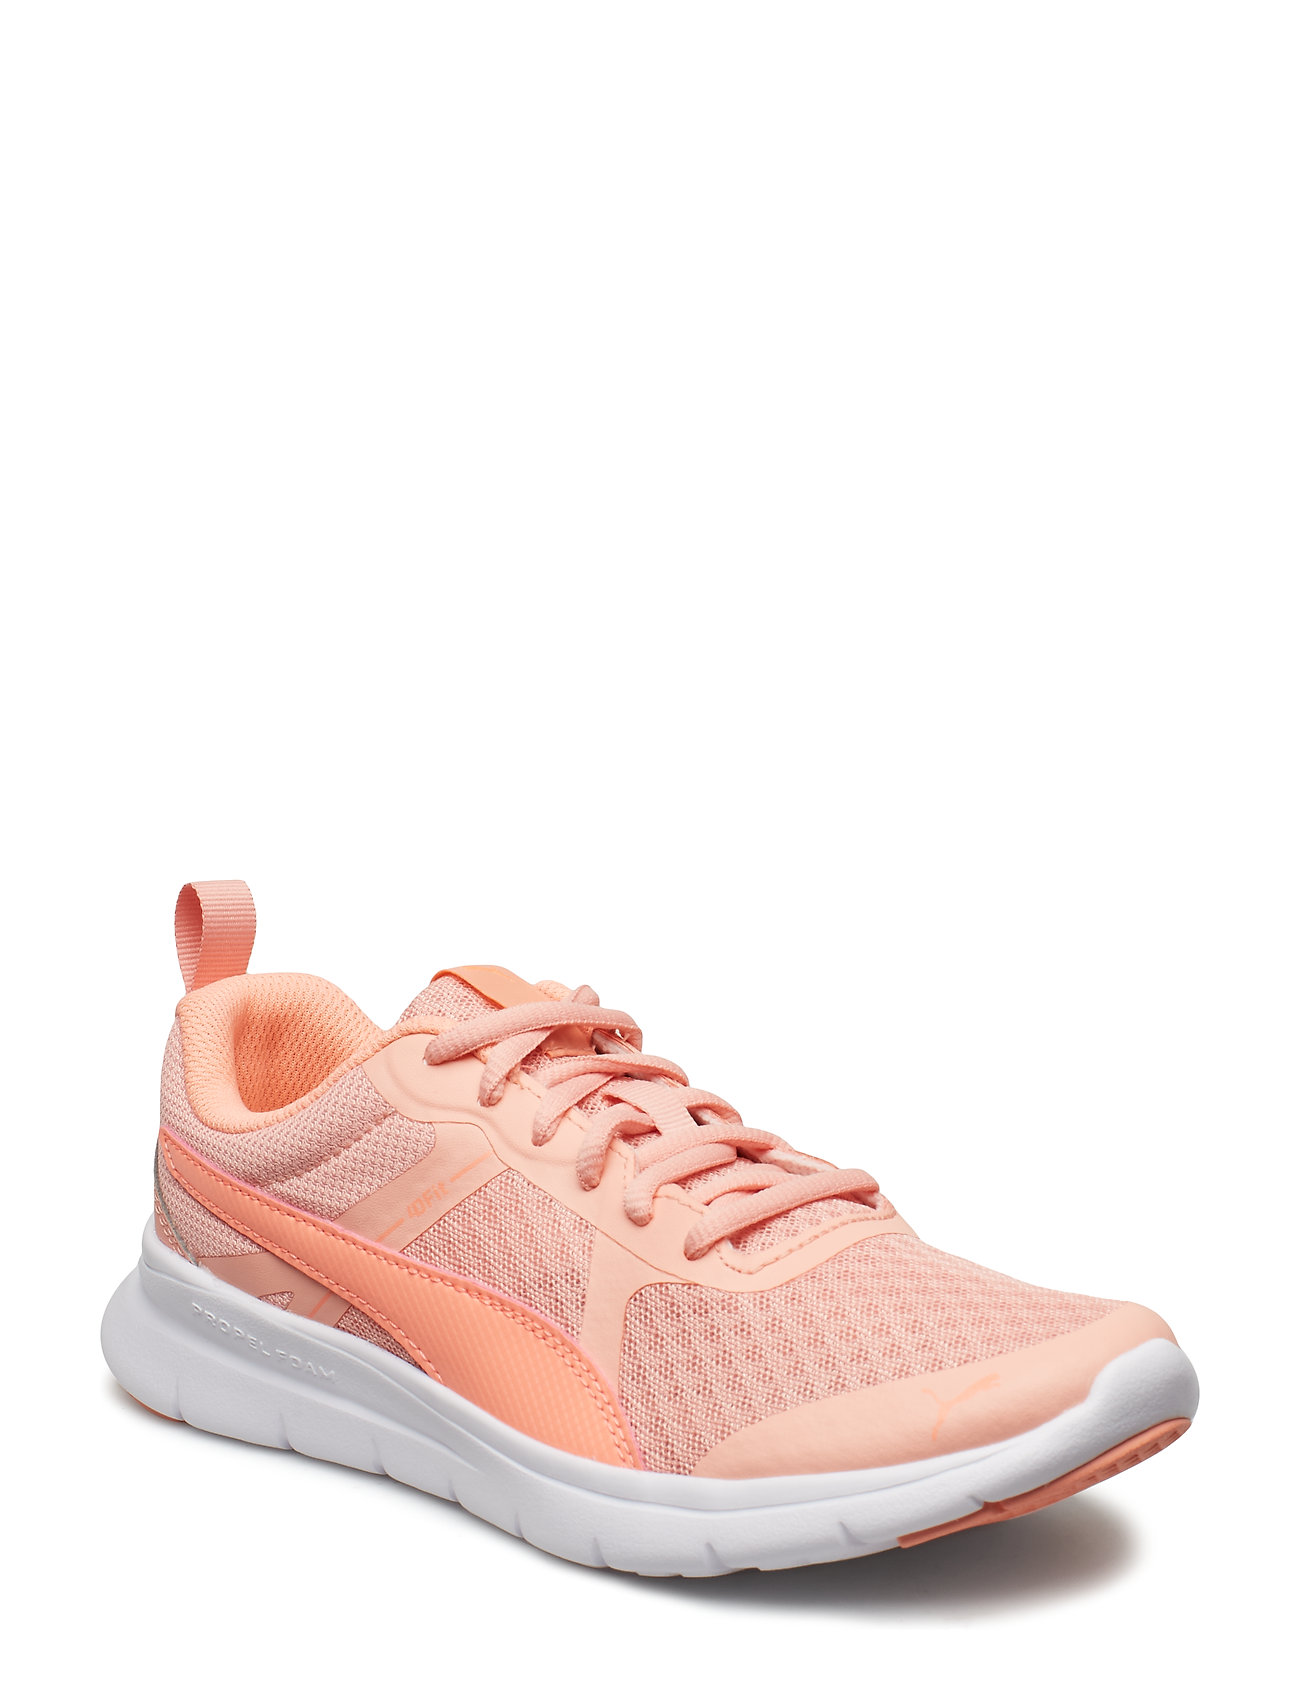 PUMA PUMA Flex Essential Jr - PEACH BUD-BRIGHT PEACH